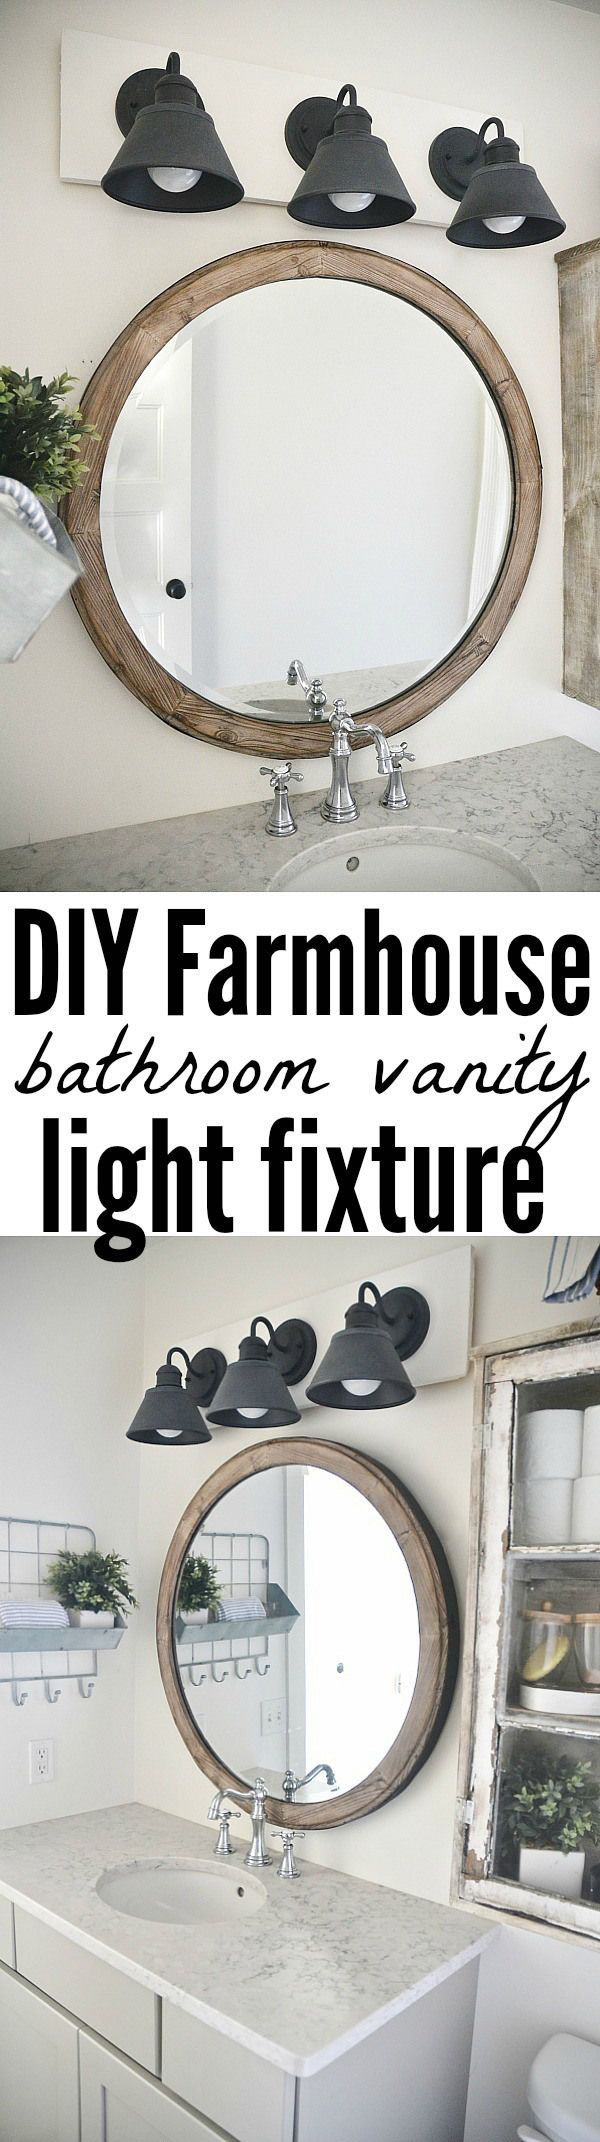 Diy Round Vanity Mirror With Lights - Vanity Ideas on unique bathroom lighting ideas, bathroom sink lighting ideas, bathroom mirror over recessed lighting, bathroom mirror trim ideas, bathroom vanity mirrors, bathroom mirror cabinet ideas, bathroom shower lighting ideas, bathroom mirror makeover ideas, bathroom sconces and mirrors, bathroom vanity lighting, bathroom wall mirror ideas, bathroom mirror border ideas, bathroom sconce lighting, bathroom lights, update bathroom mirror ideas, master bathroom lighting ideas, vanity mirror lighting ideas, bathroom lighting fixtures, bathroom curtains at lowe's, bathroom lighting ideas over mirror,